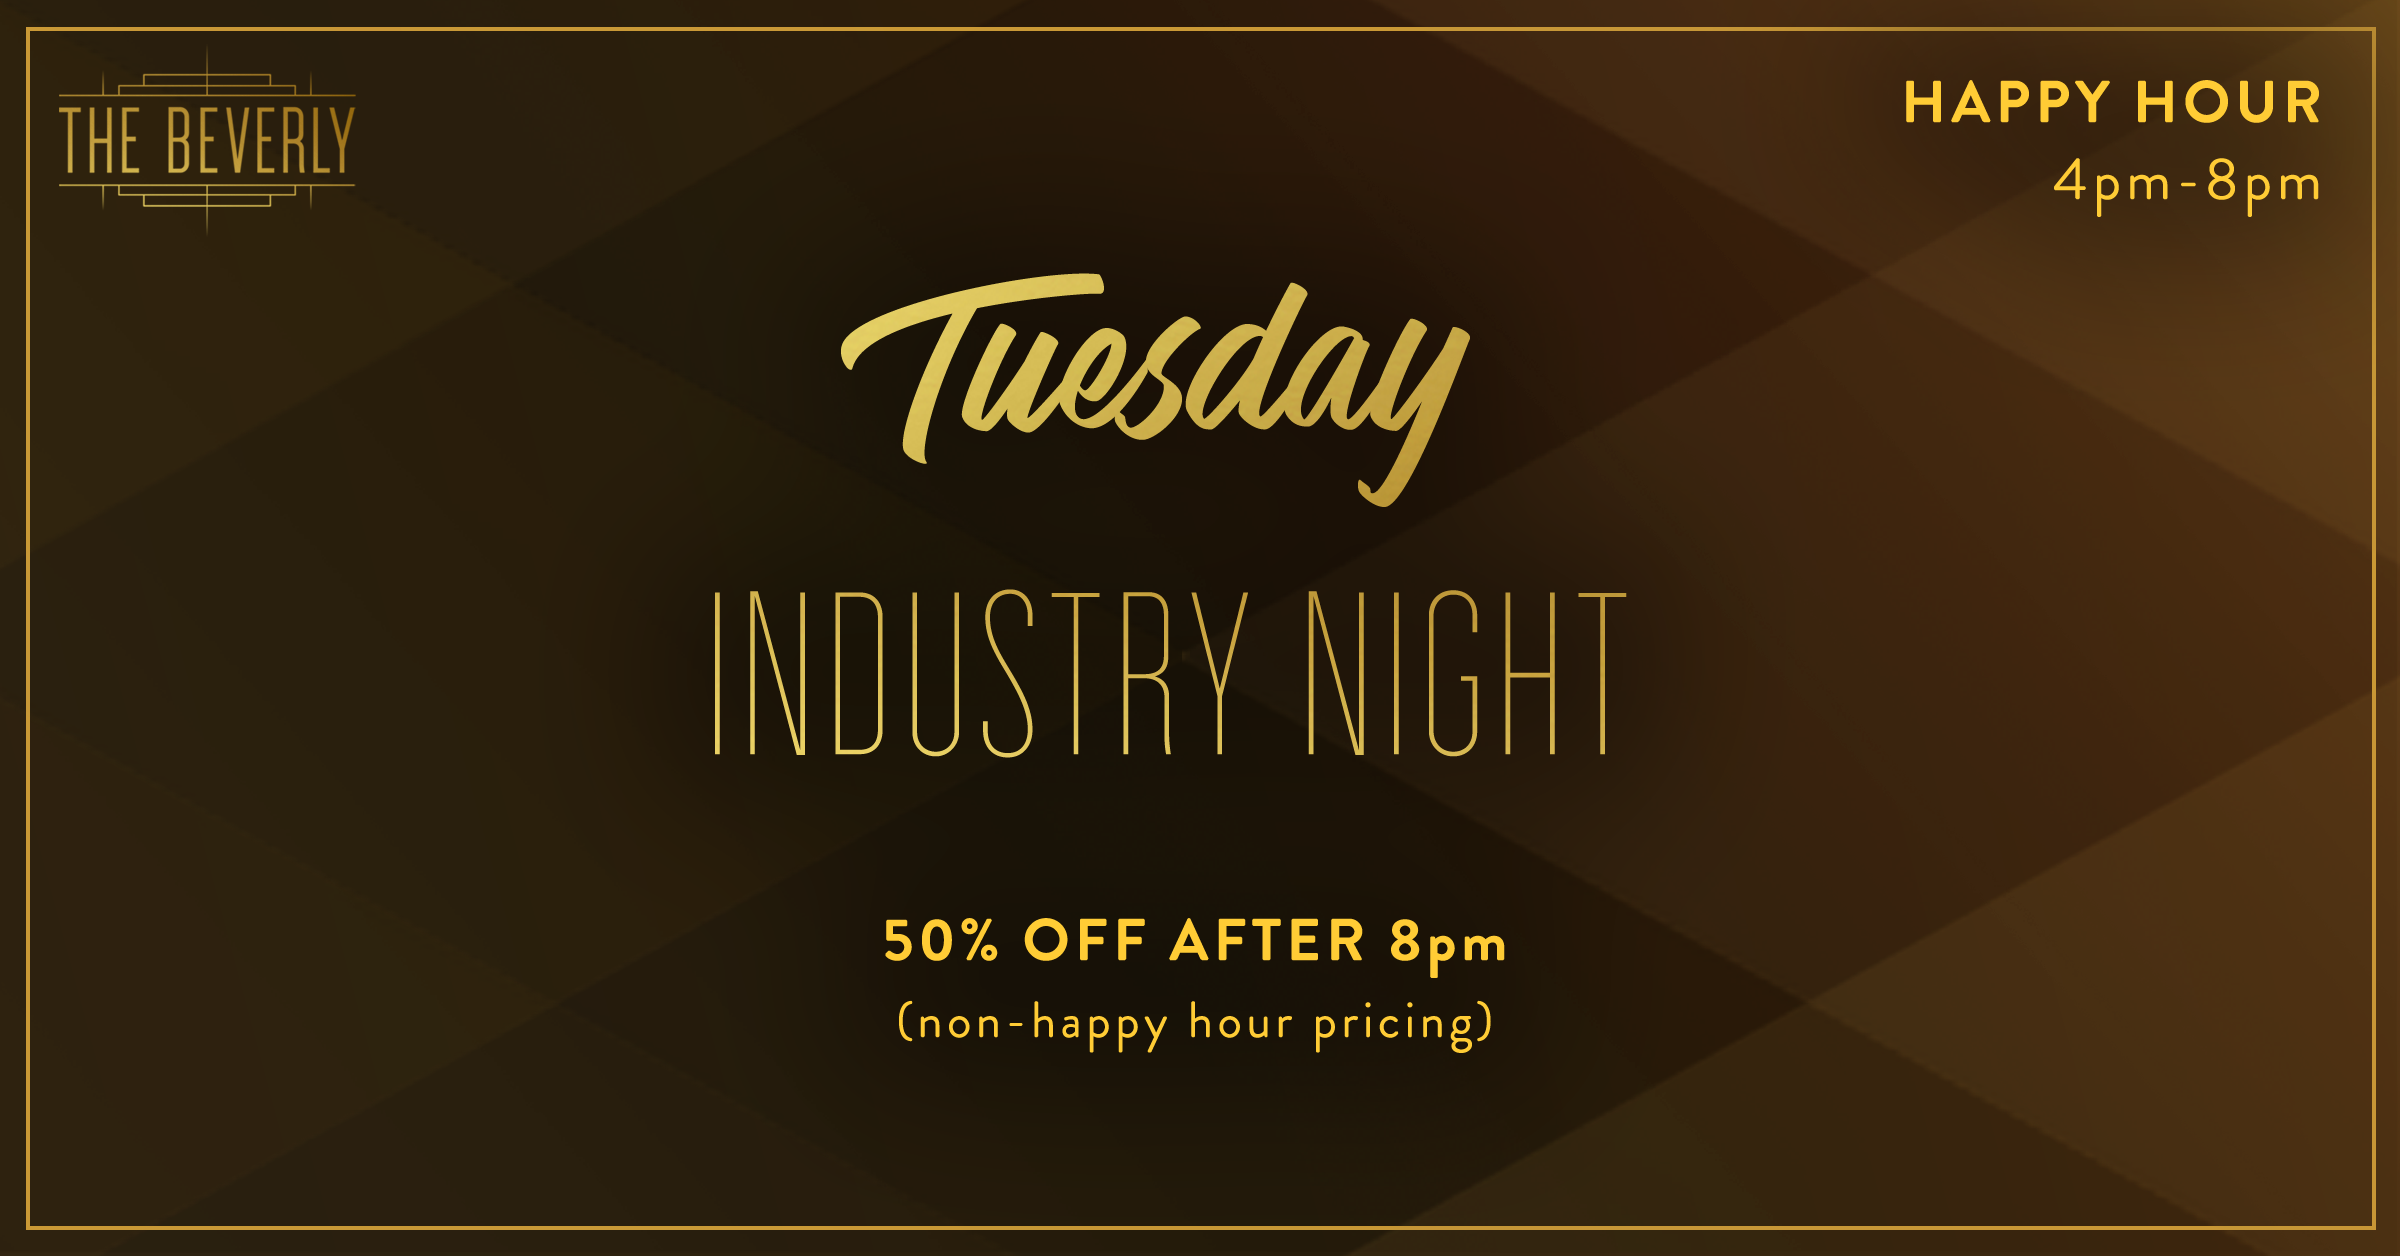 Tuesday industry night